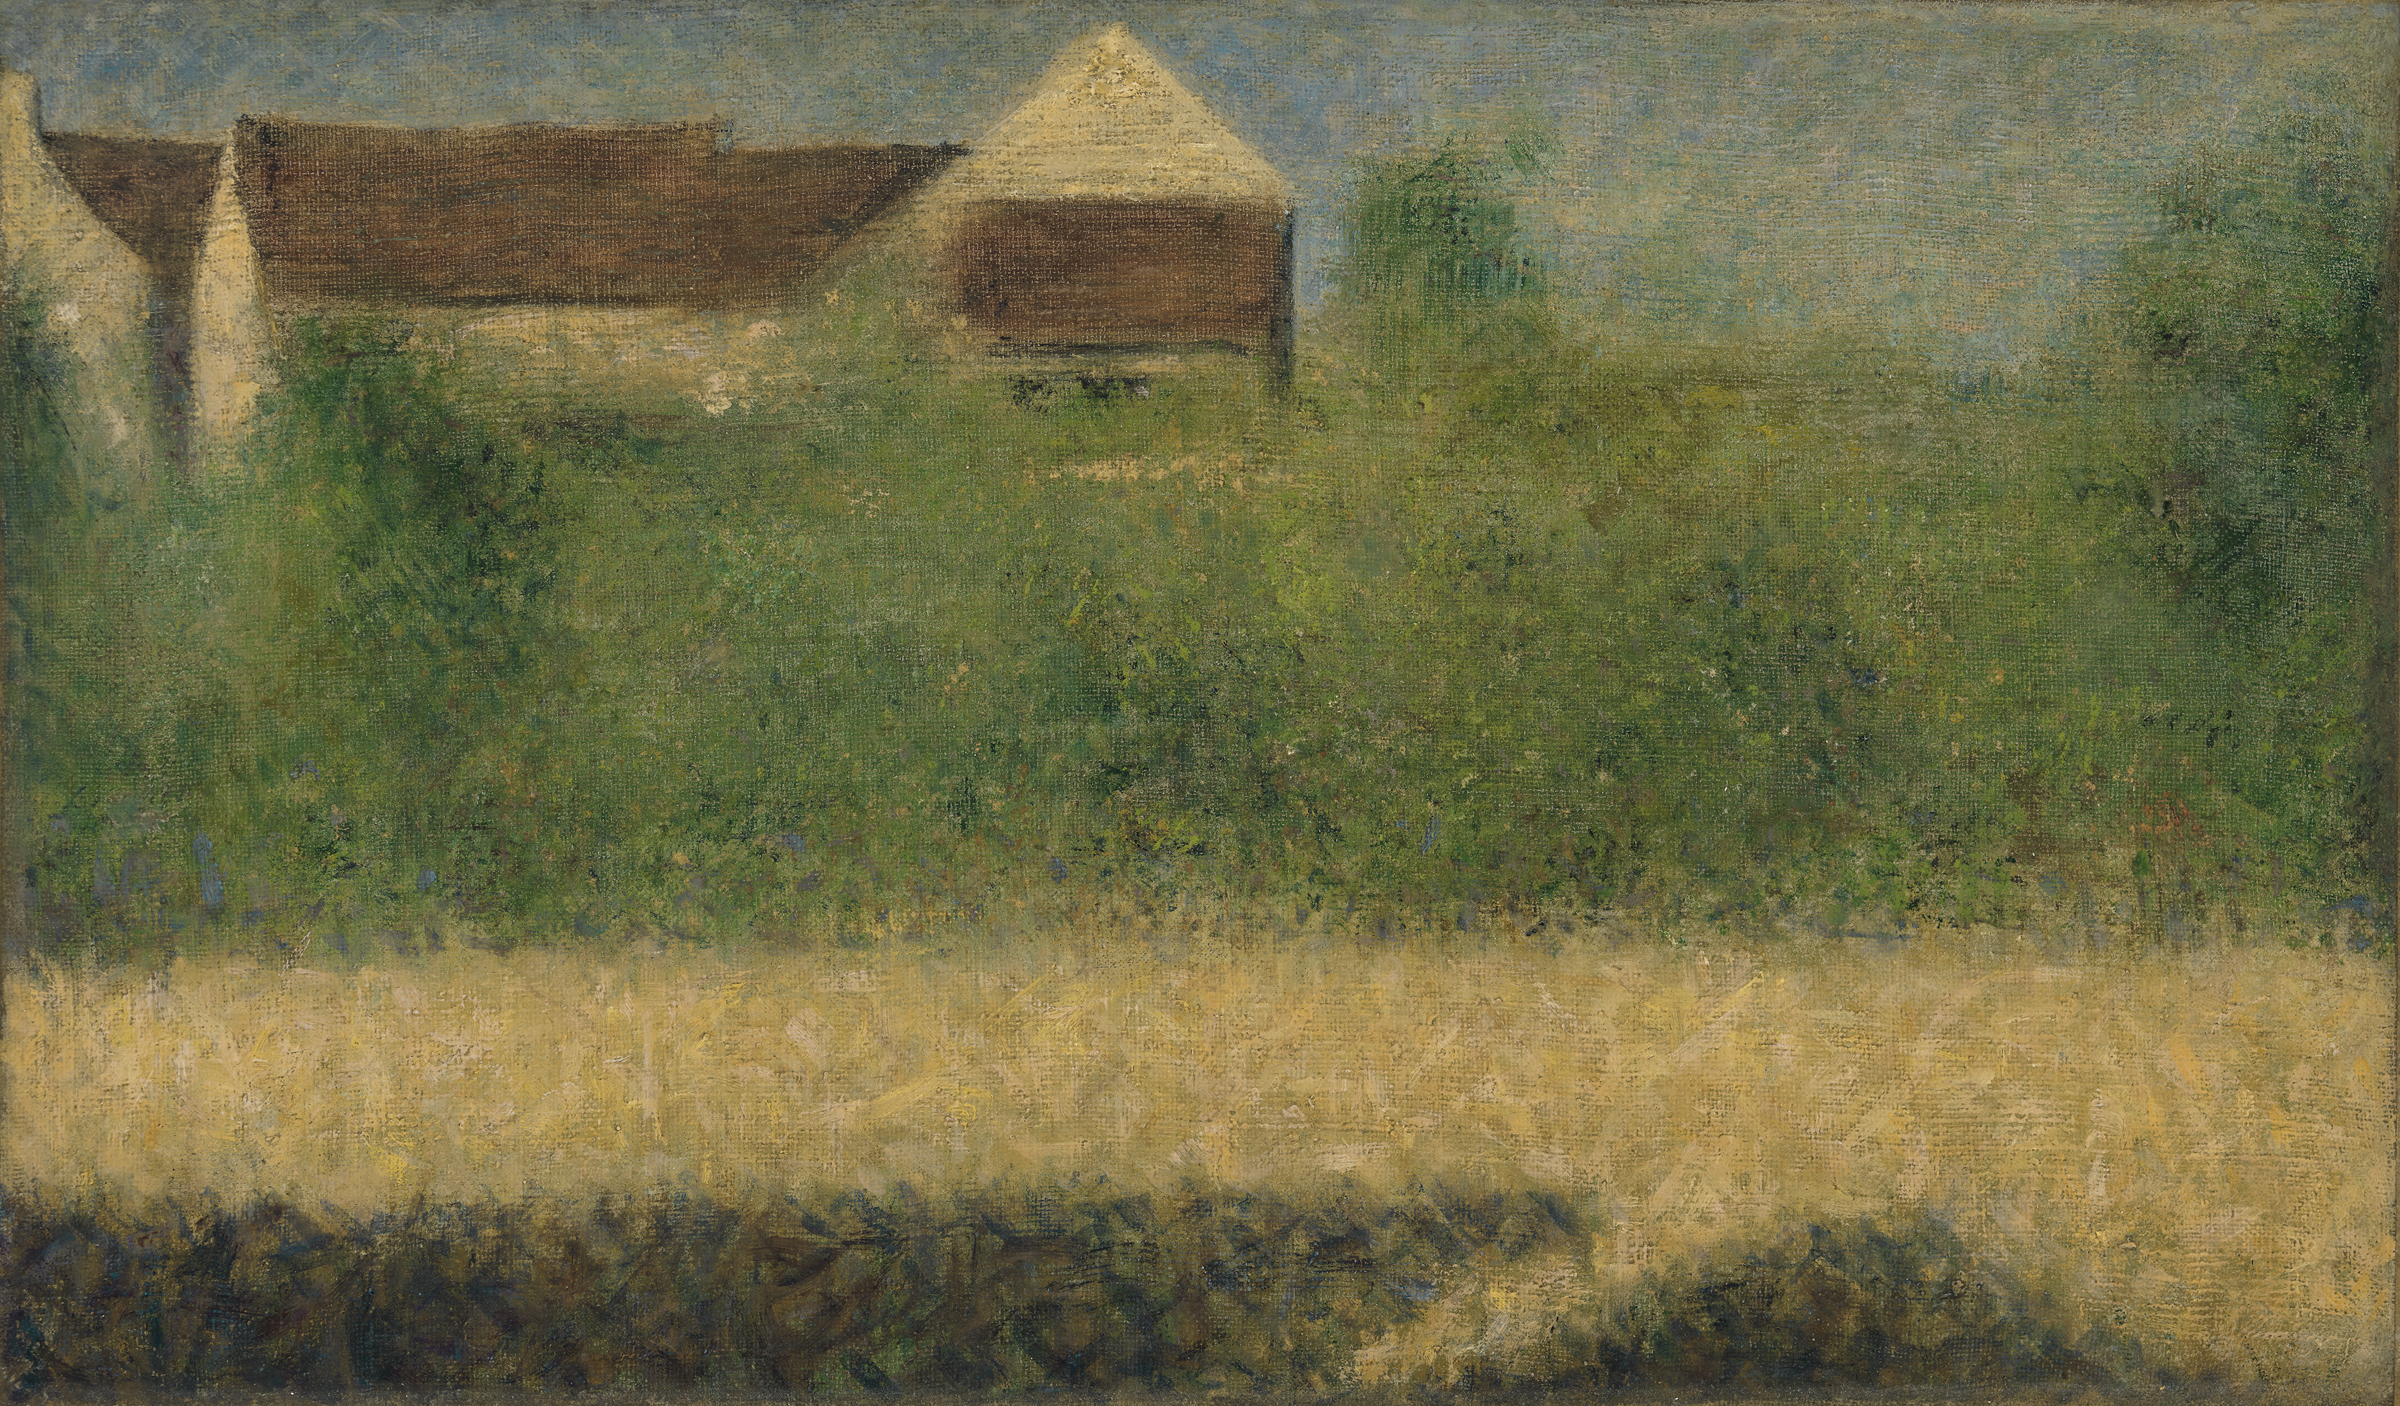 https://vmfa.museum/pressroom/wp-content/uploads/sites/3/2015/01/VMFA_Seurat_C17-2014-18_v1TF.jpg